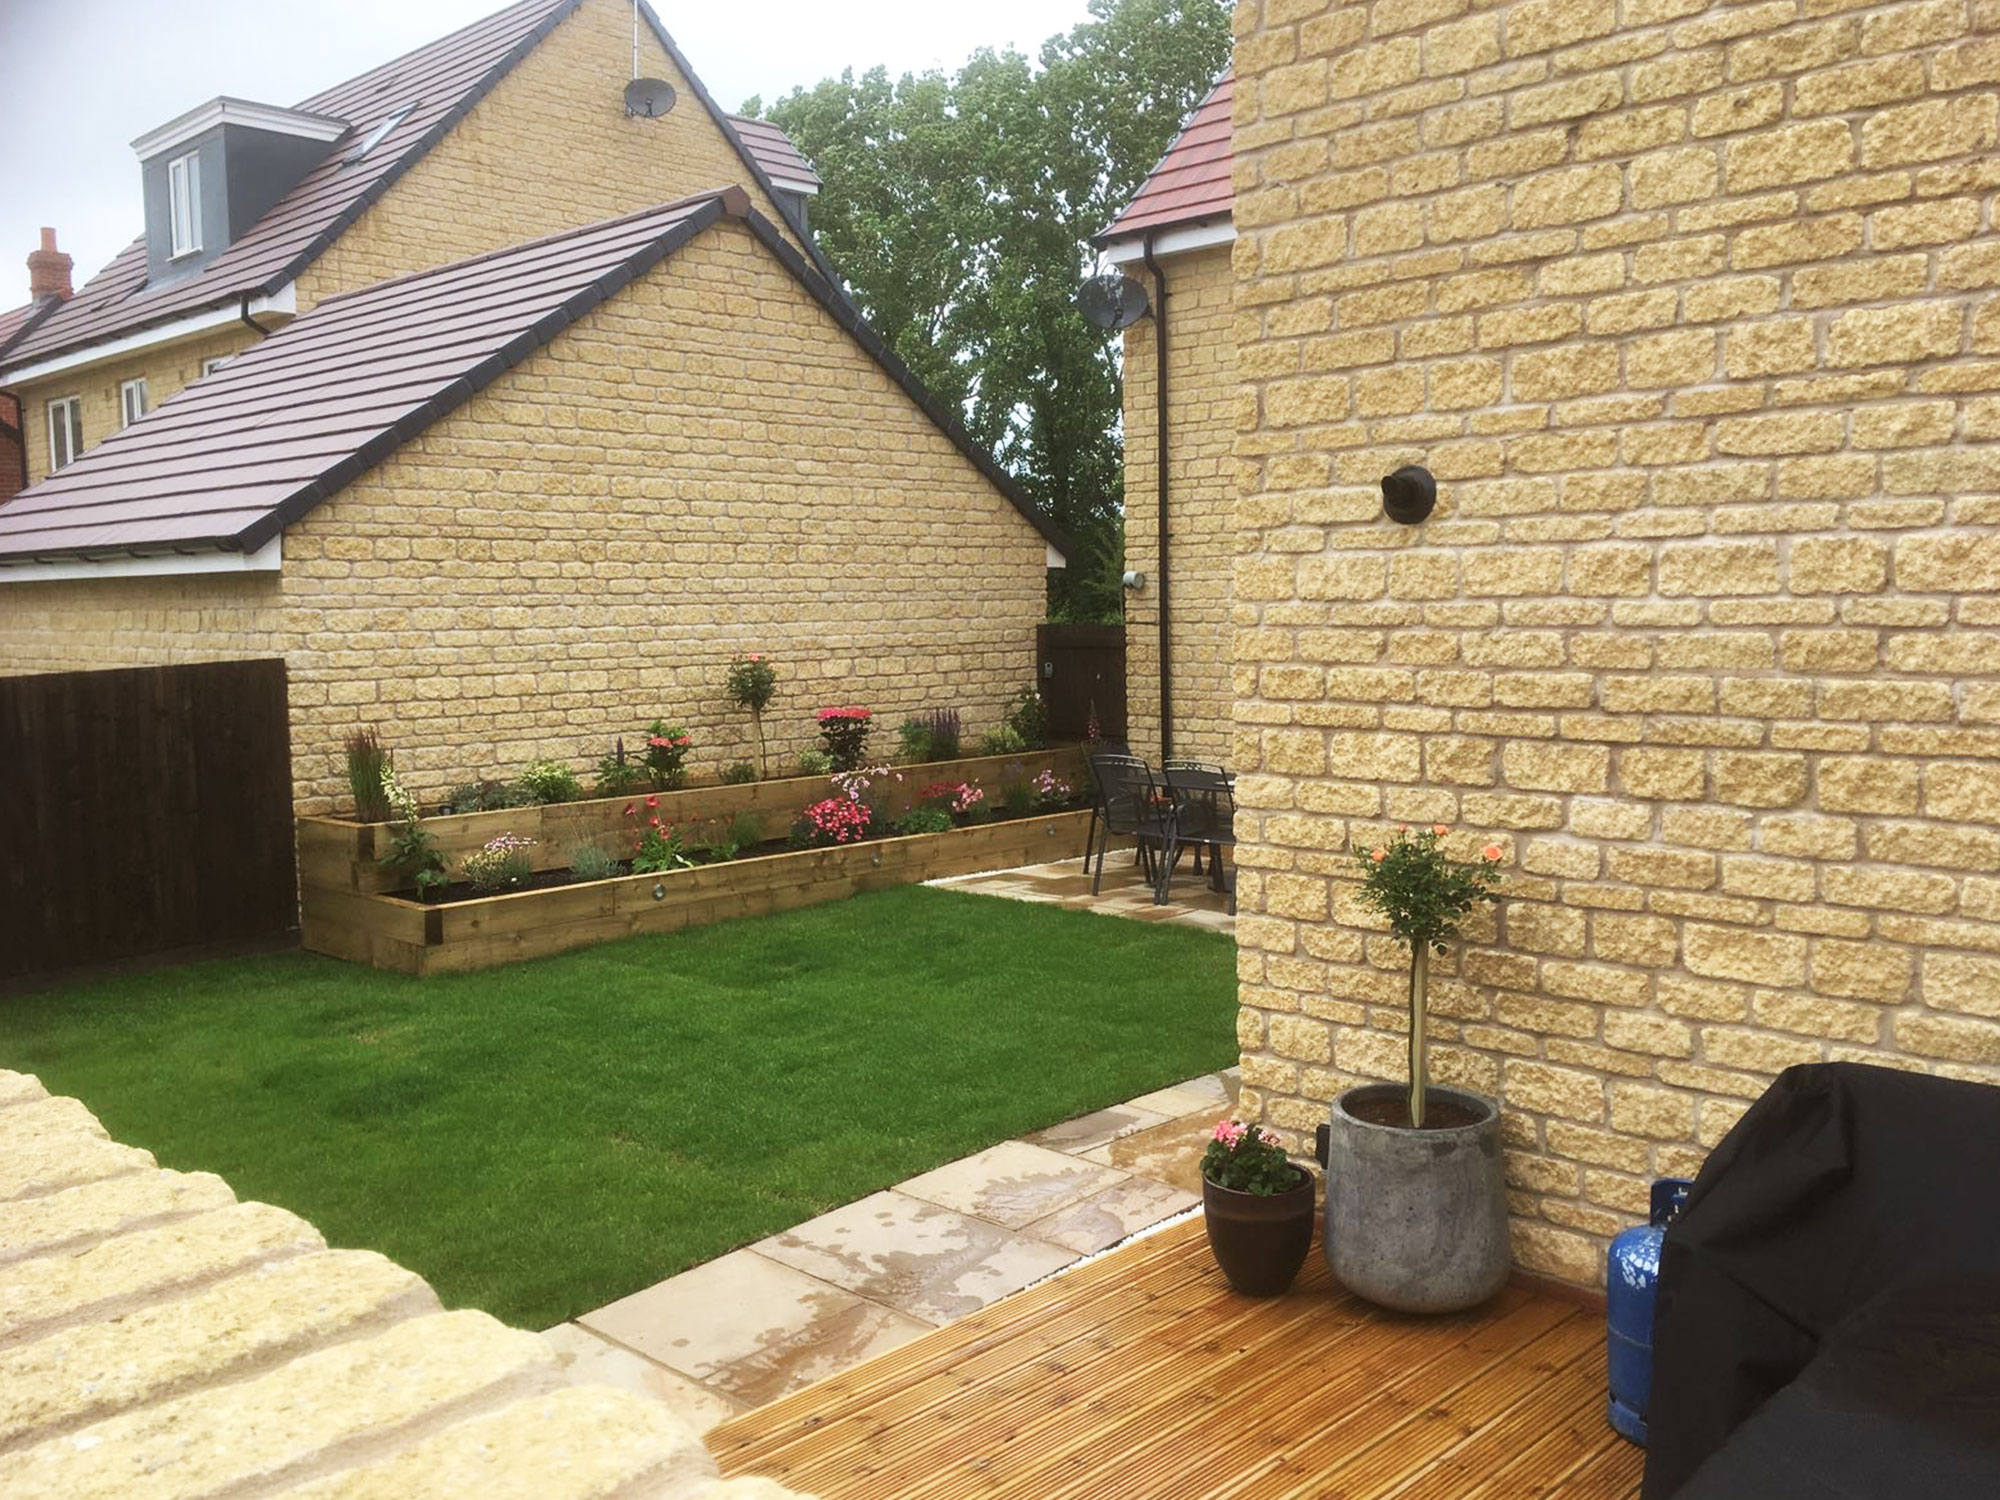 Landscaping - Lawns